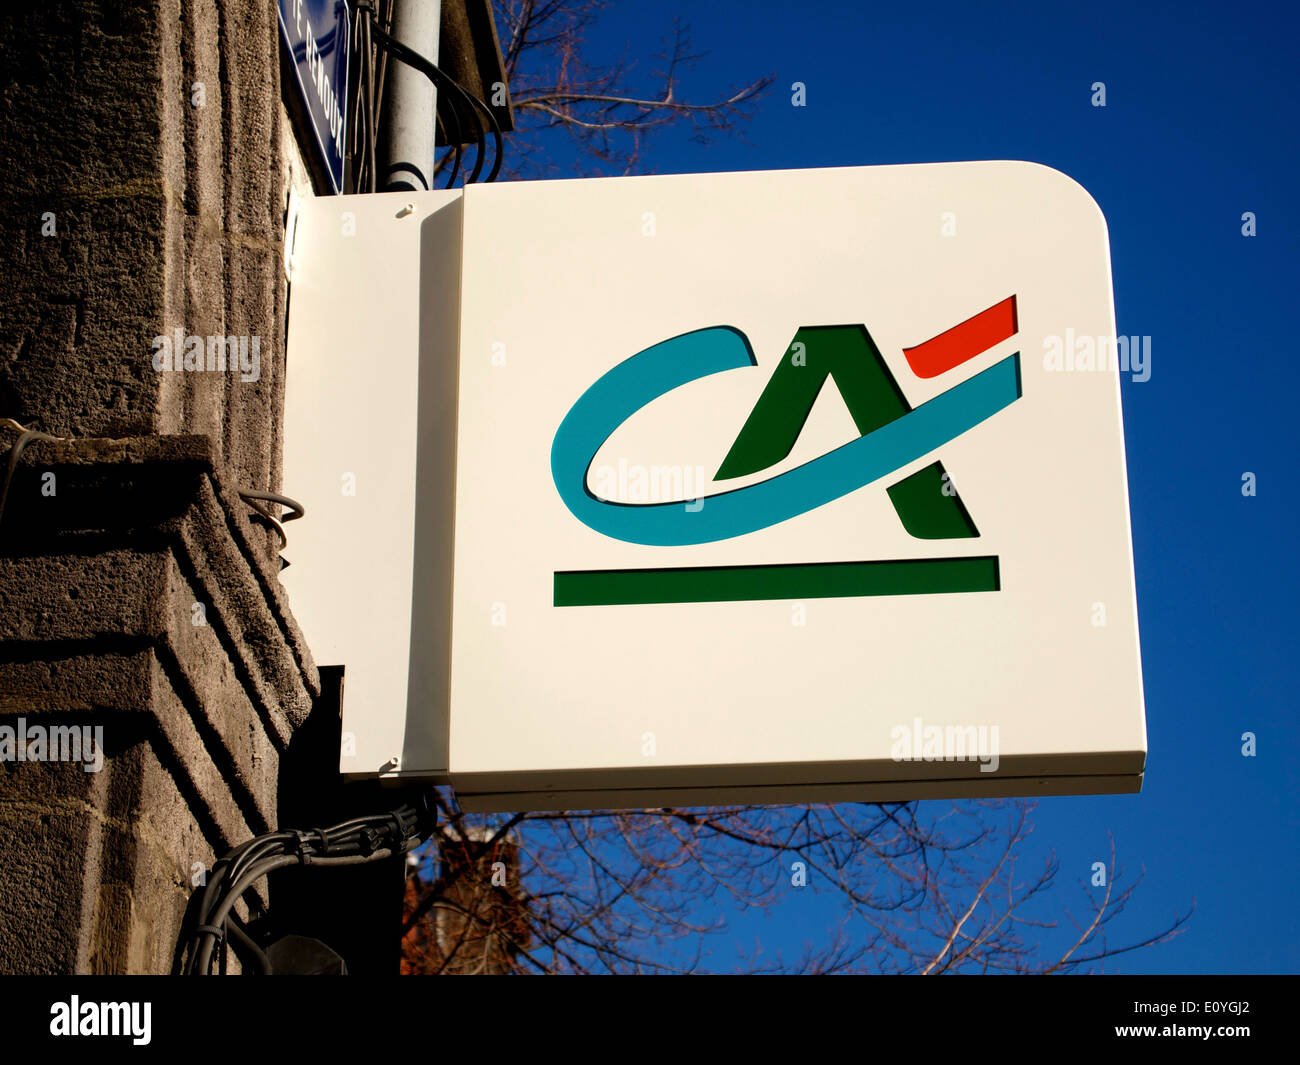 Credit Agricole bank sign, France - Stock Image